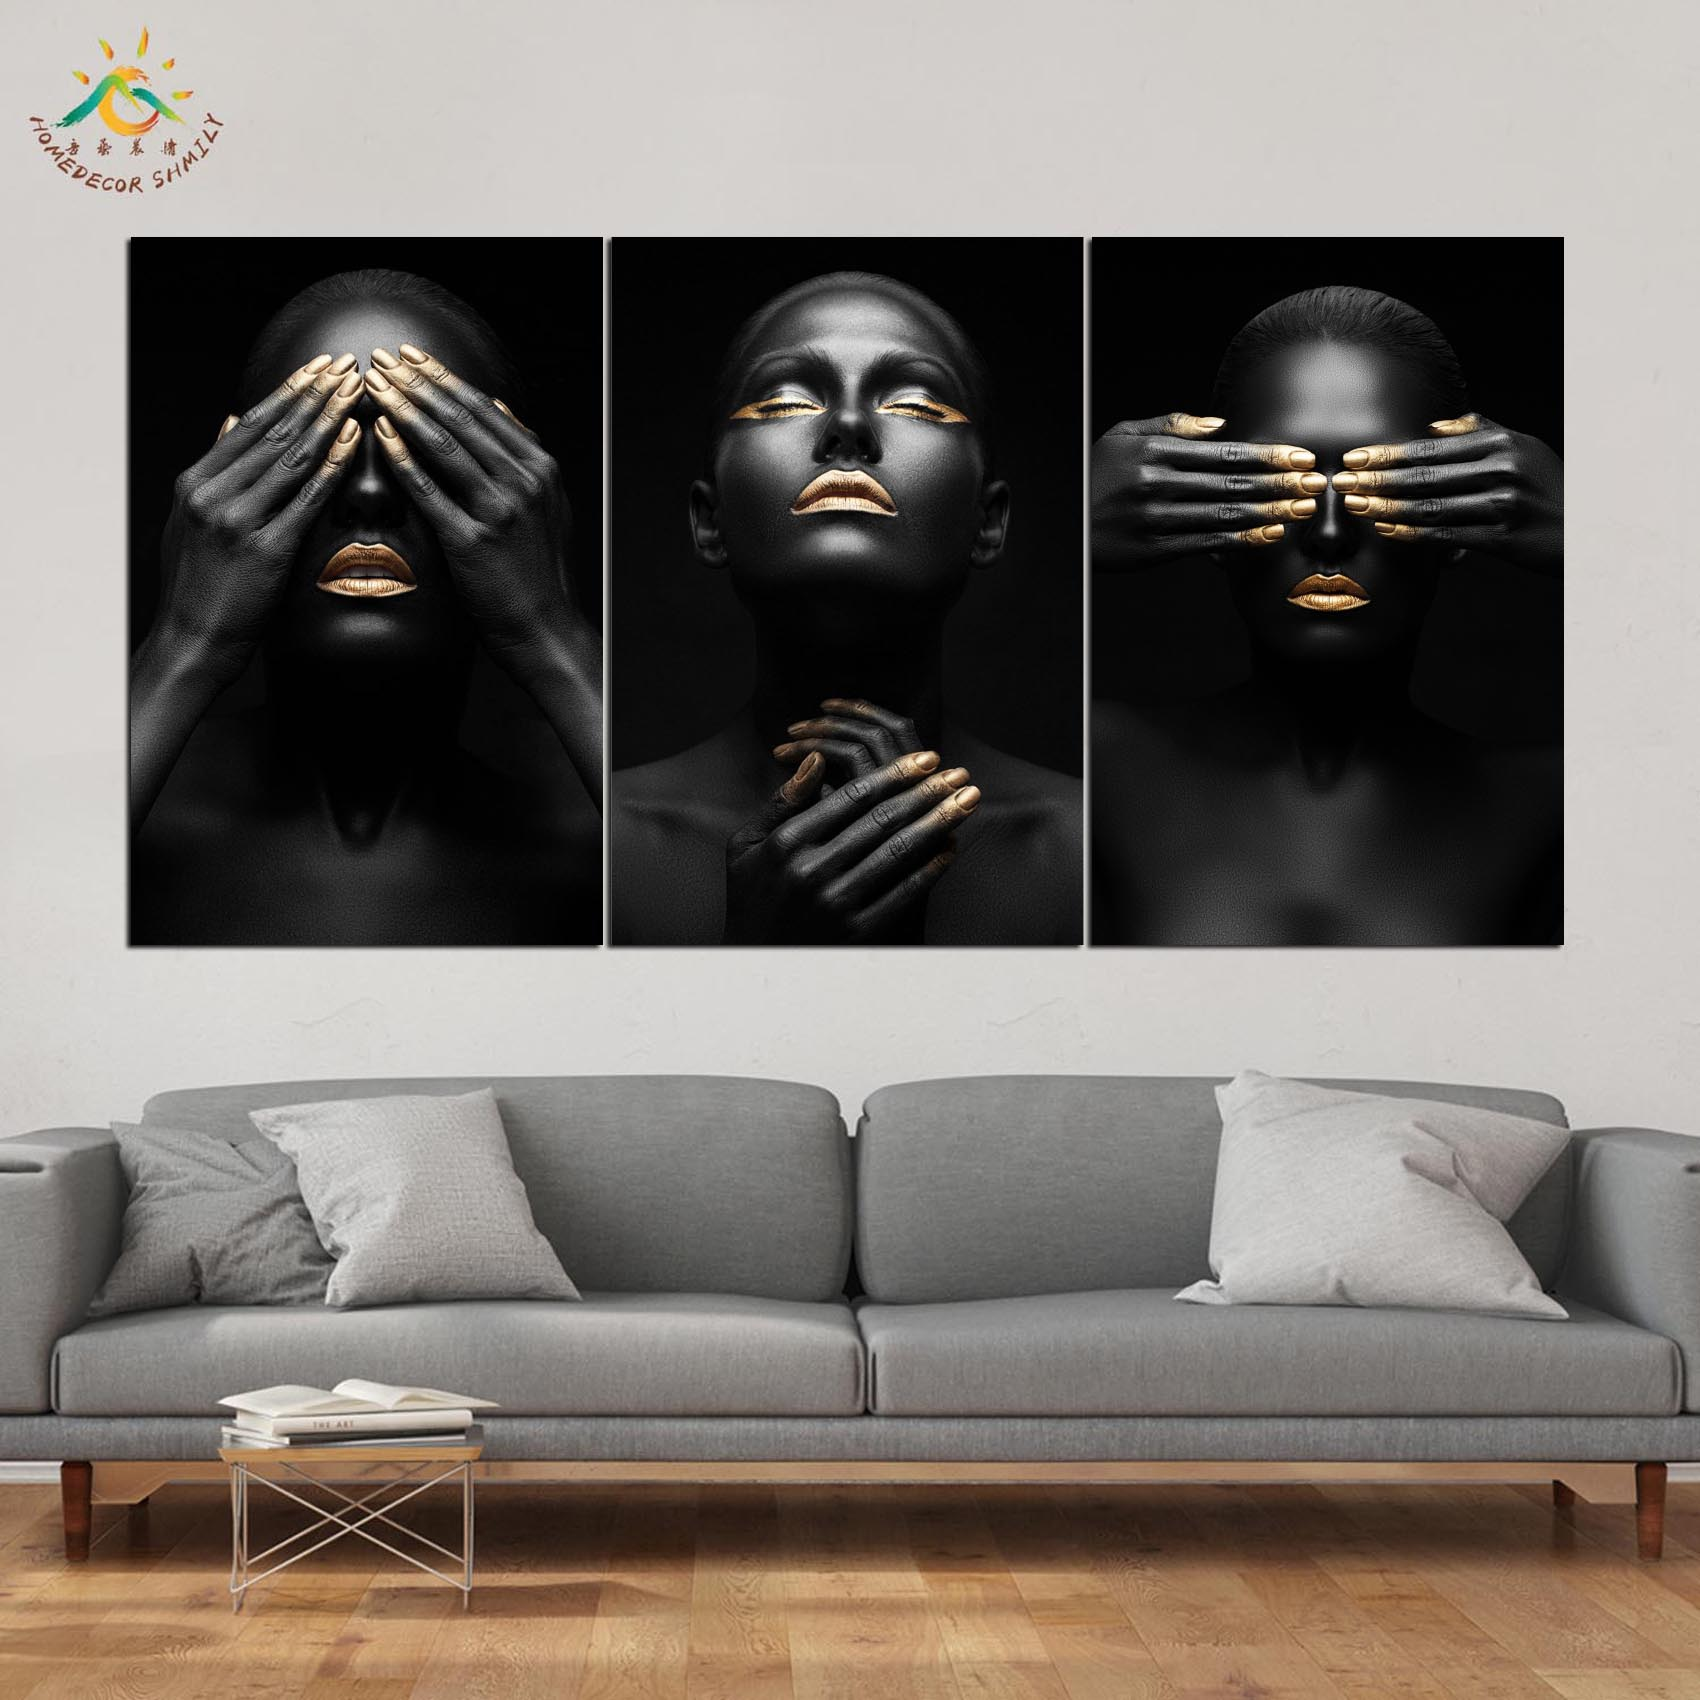 Black Face Pose Modern Canvas Art Prints Poster Wall Painting Home Decoration Pictures for Bedroom 3 PIECES